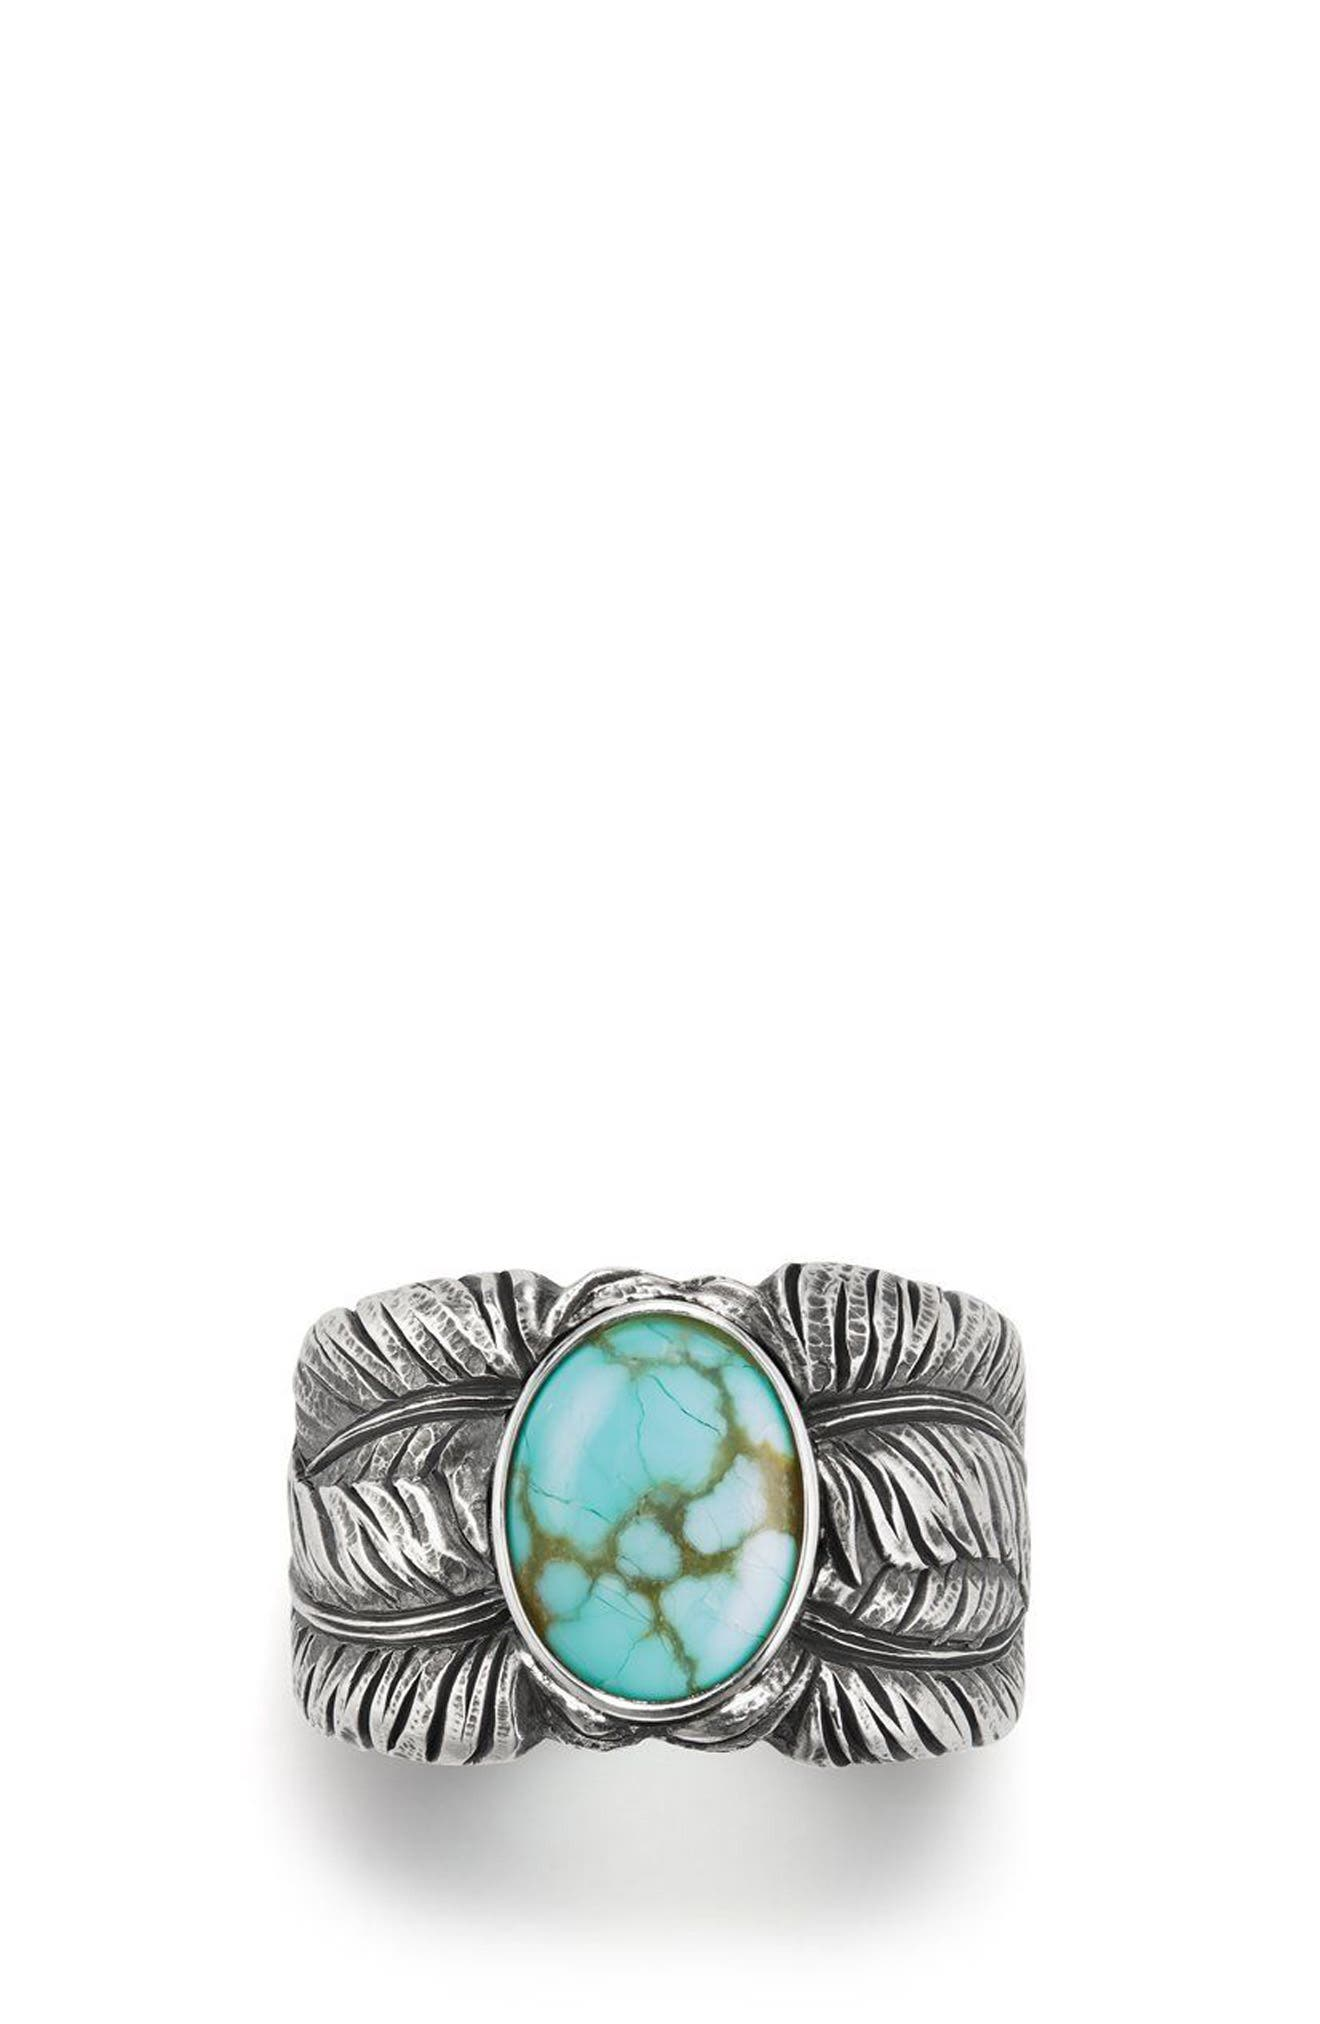 Southwest Cigar Band Feather Ring with Turquoise,                             Main thumbnail 1, color,                             Turquoise